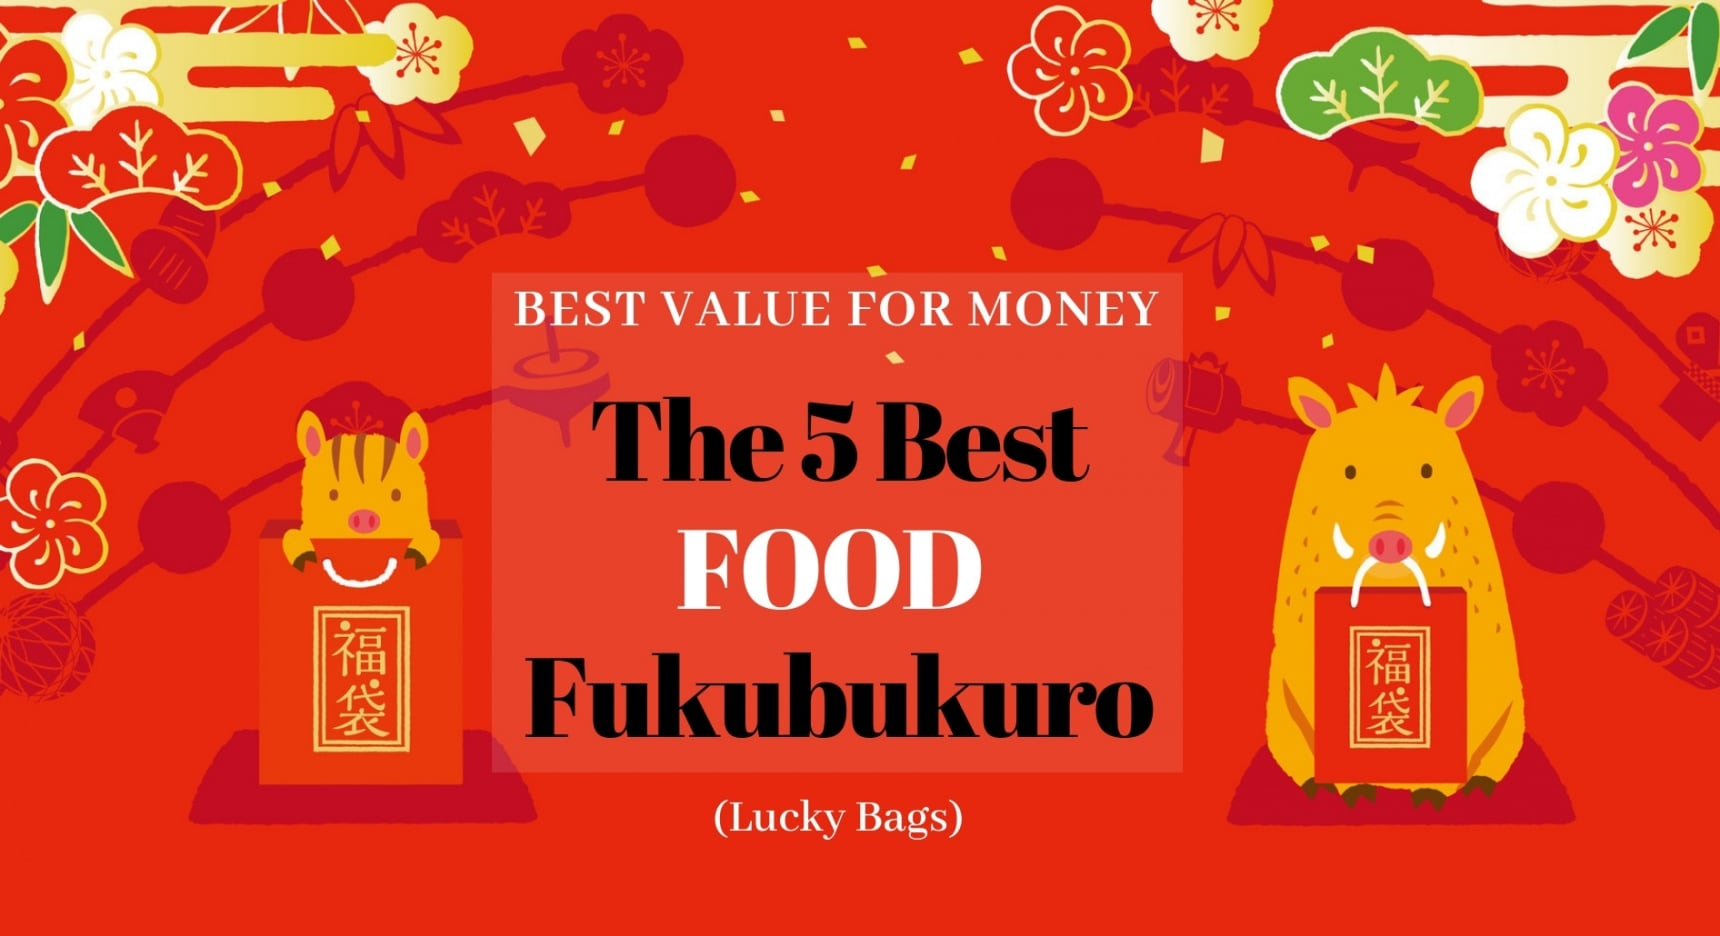 The 5 Best Value-for-Money Food Fukubukuro